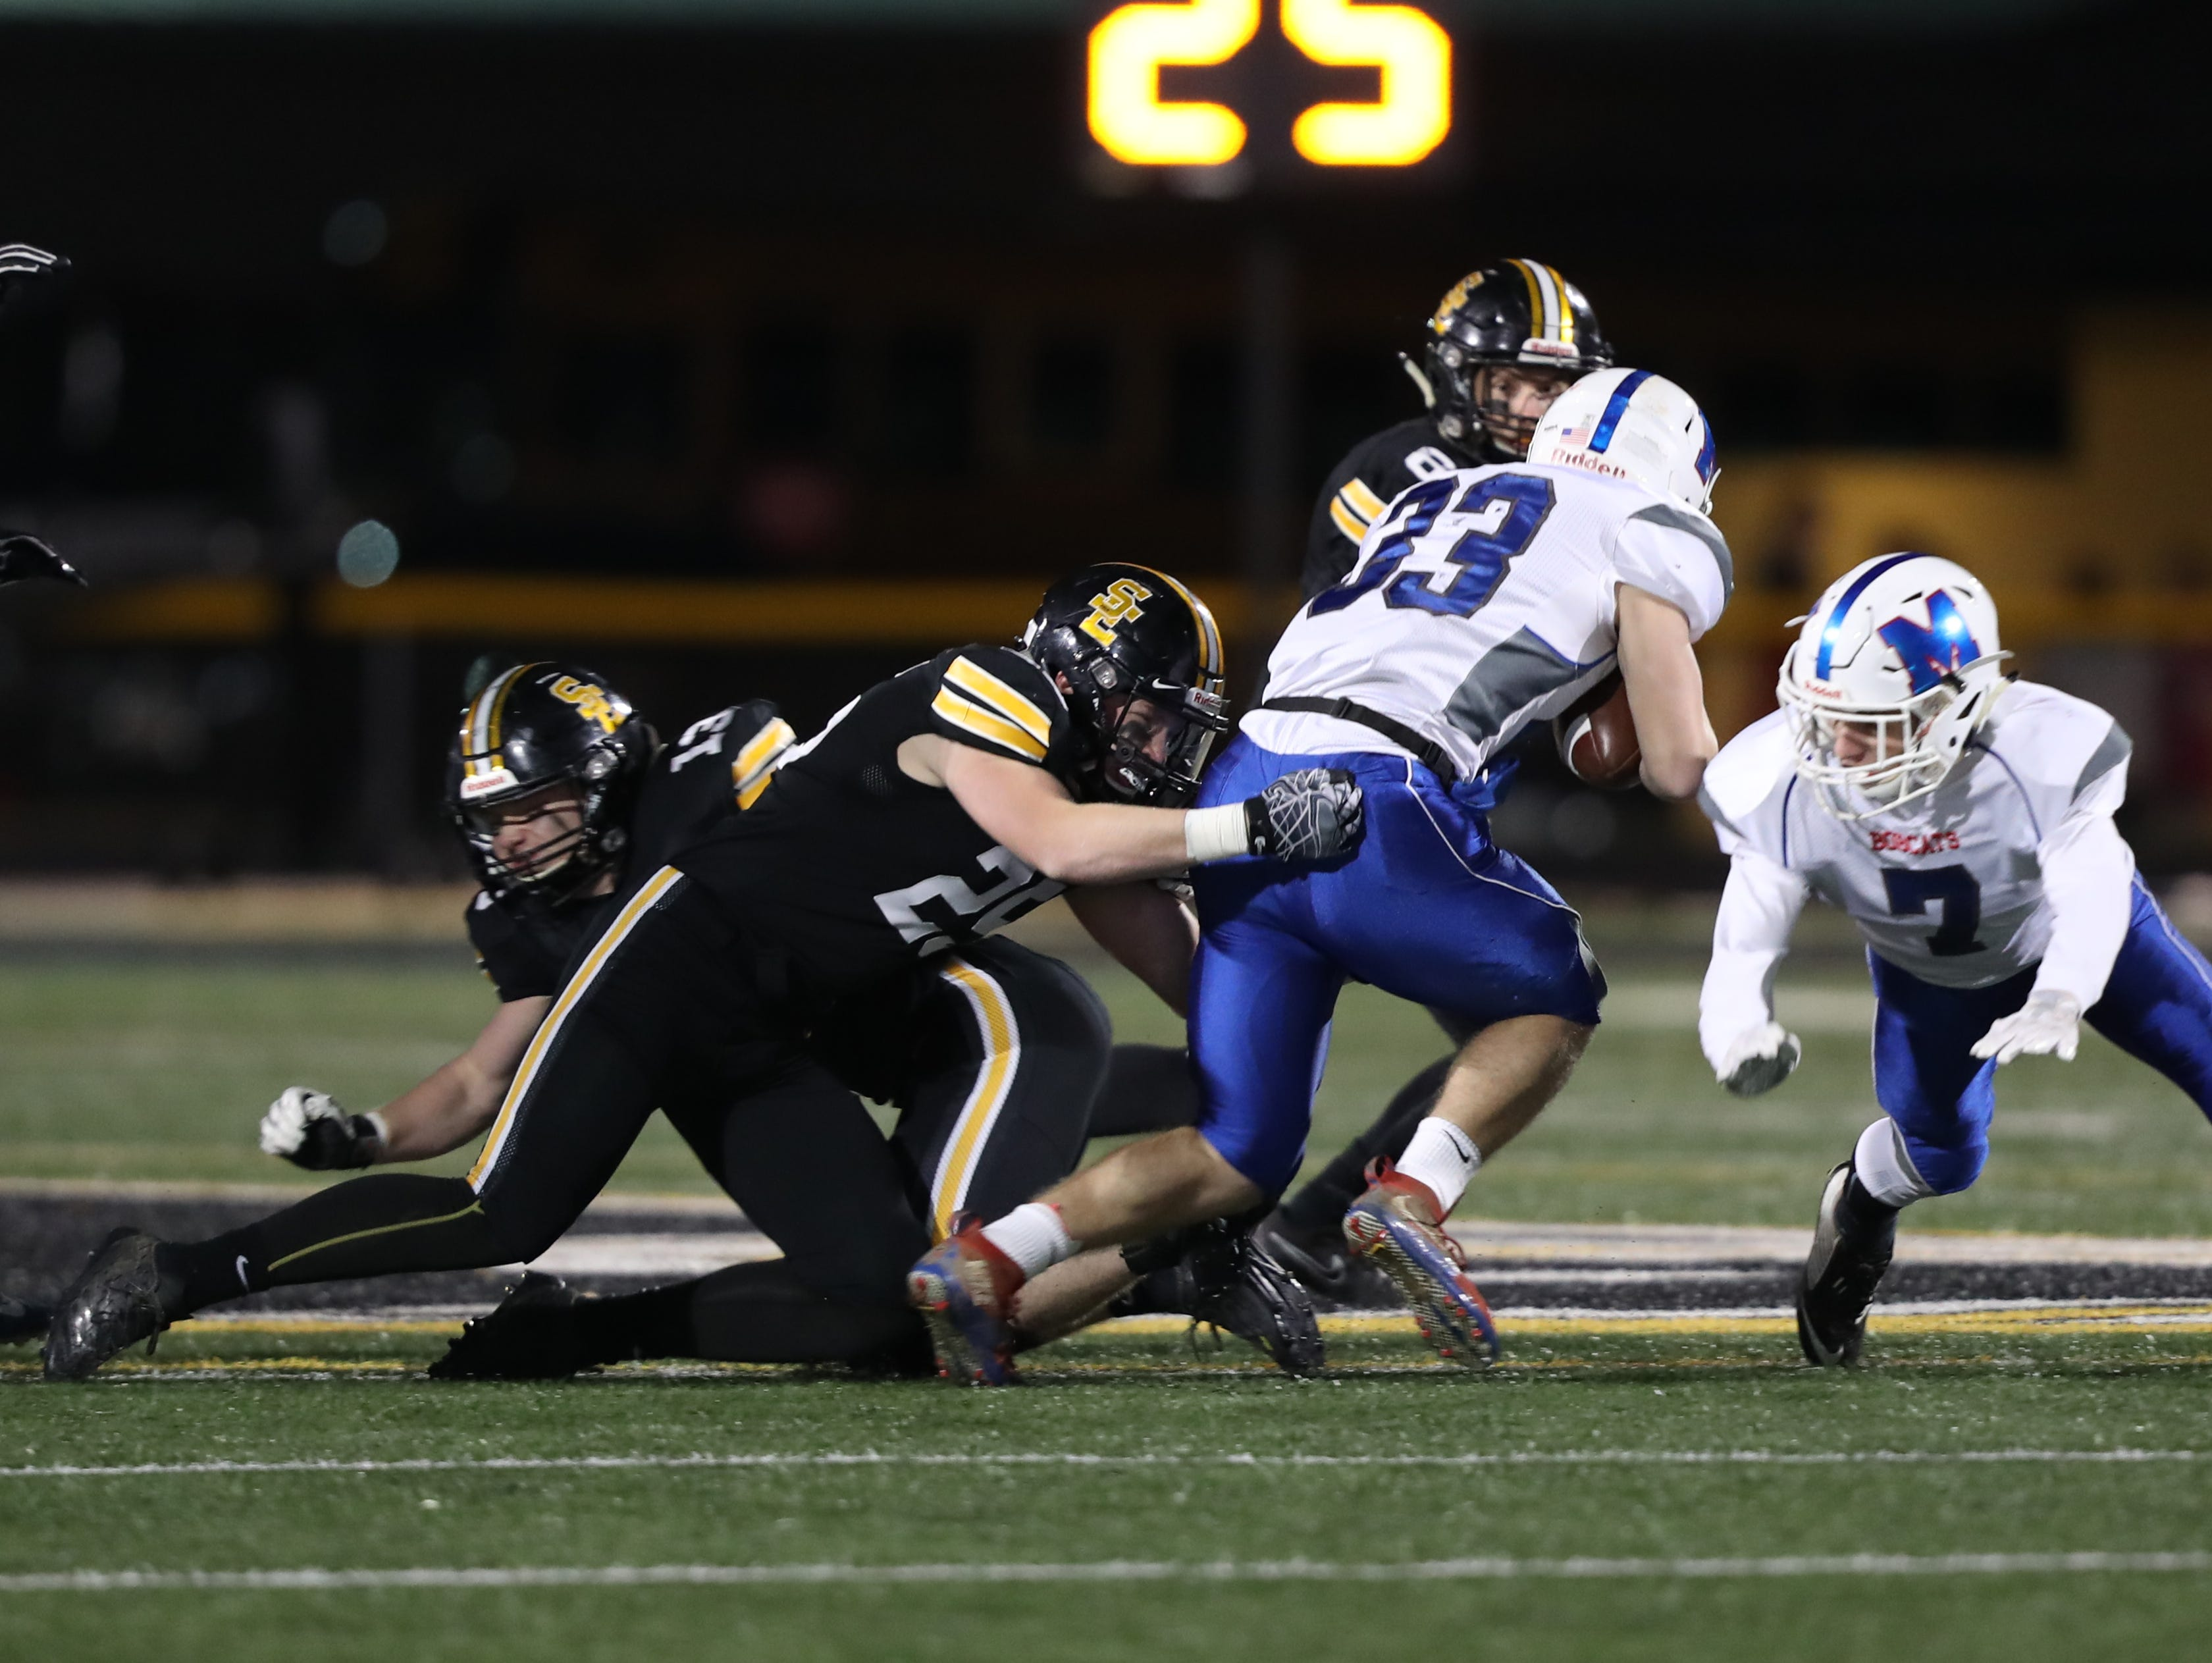 Southeast Polk Rams Zach Strickland (25) makes the tackle against the Marshalltown Bobcats at SE Polk Stadium. The Rams beat the Bobcats 56 to 7.